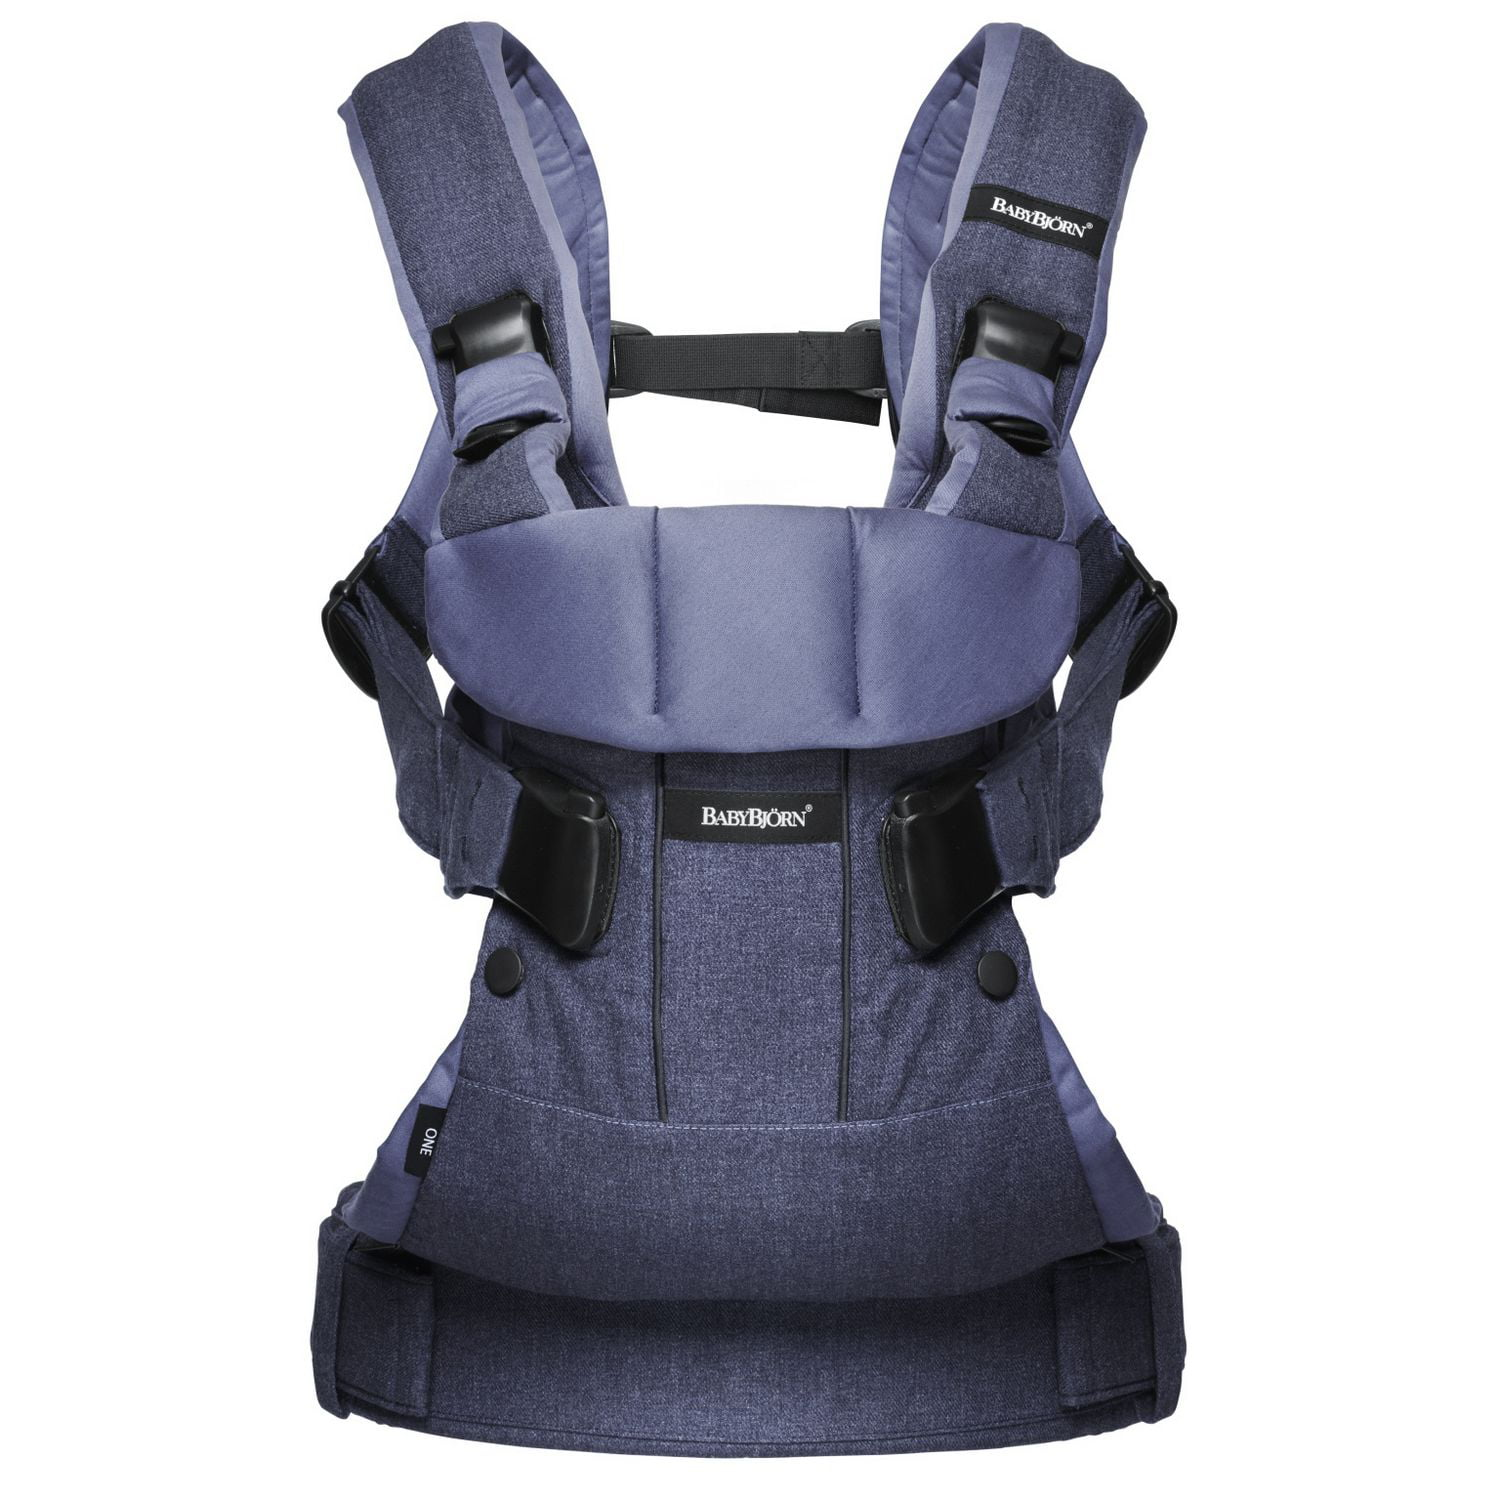 BABYBJORN Baby Carrier One Denim Gray by BabyBj%C3%B6rn